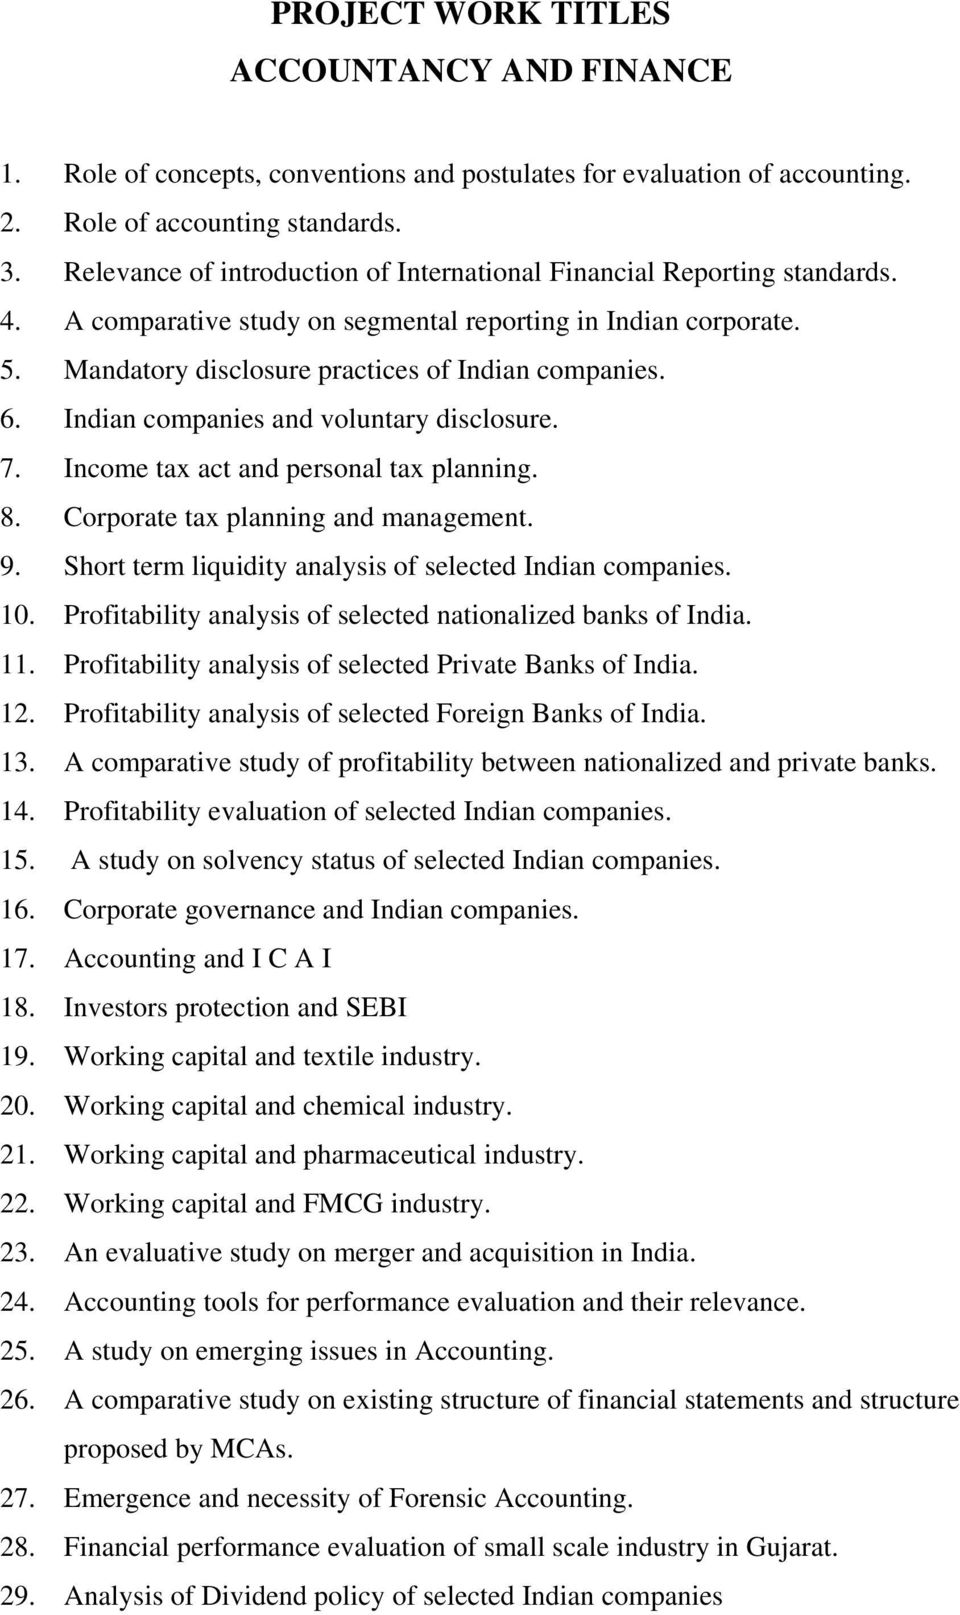 Indian companies and voluntary disclosure. 7. Income tax act and personal tax planning. 8. Corporate tax planning and management. 9. Short term liquidity analysis of selected Indian companies. 10.